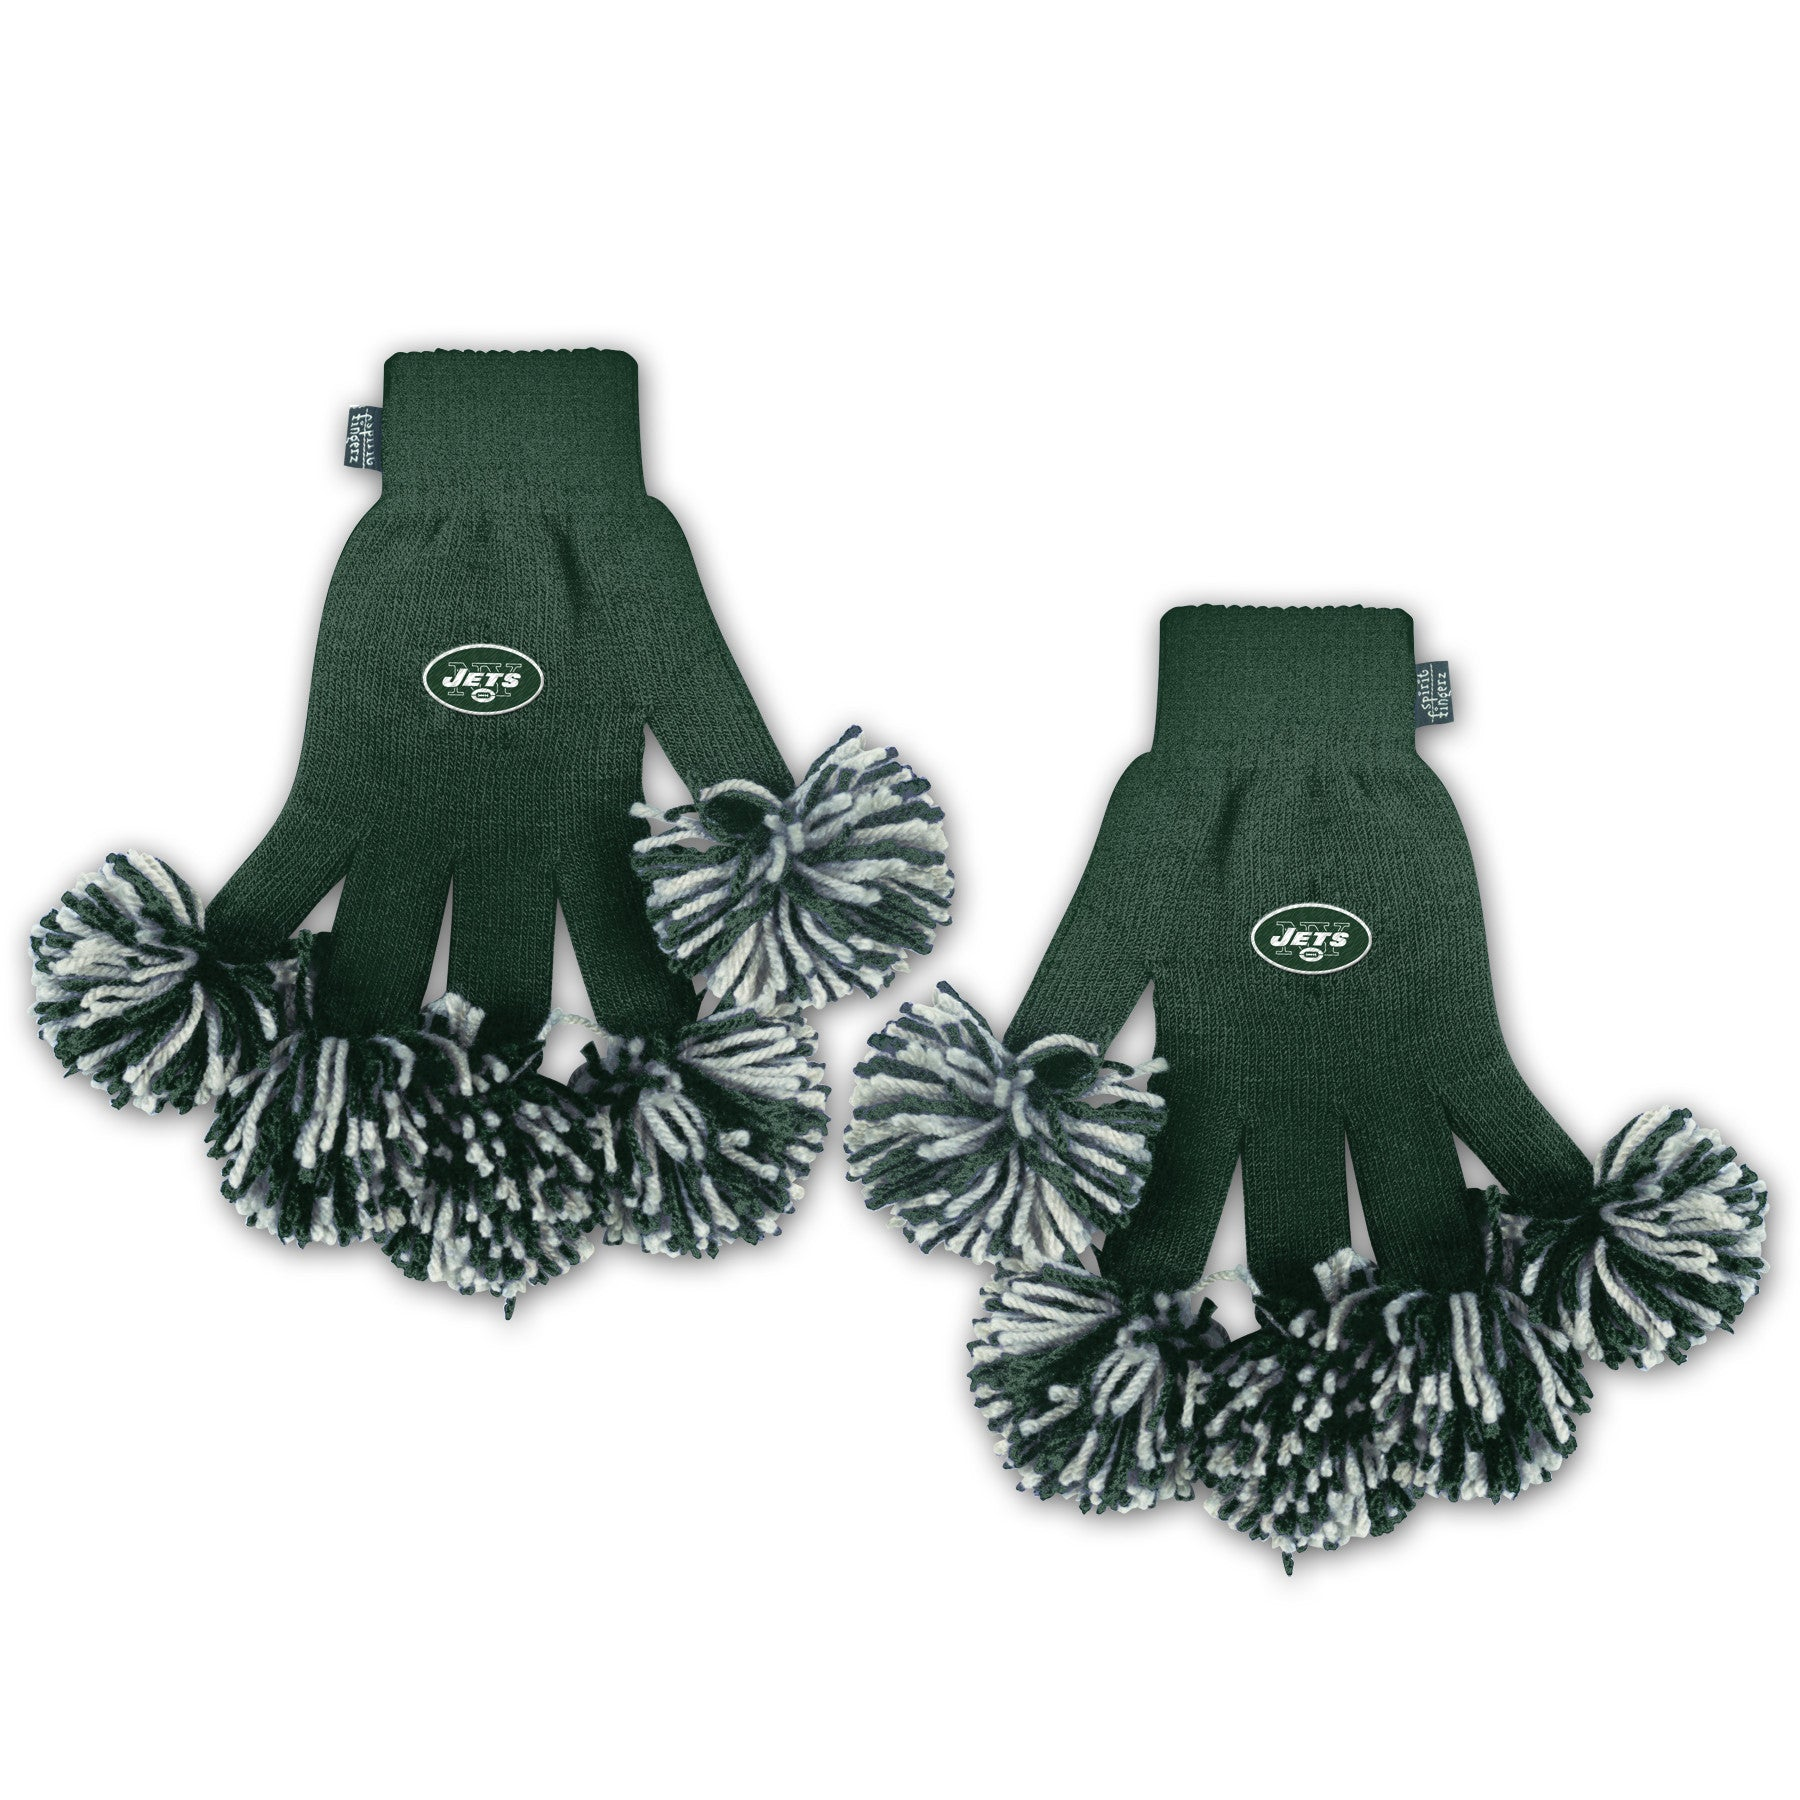 New York Jets NFL Spirit Fingerz Cheerleading Pom-Pom Gloves